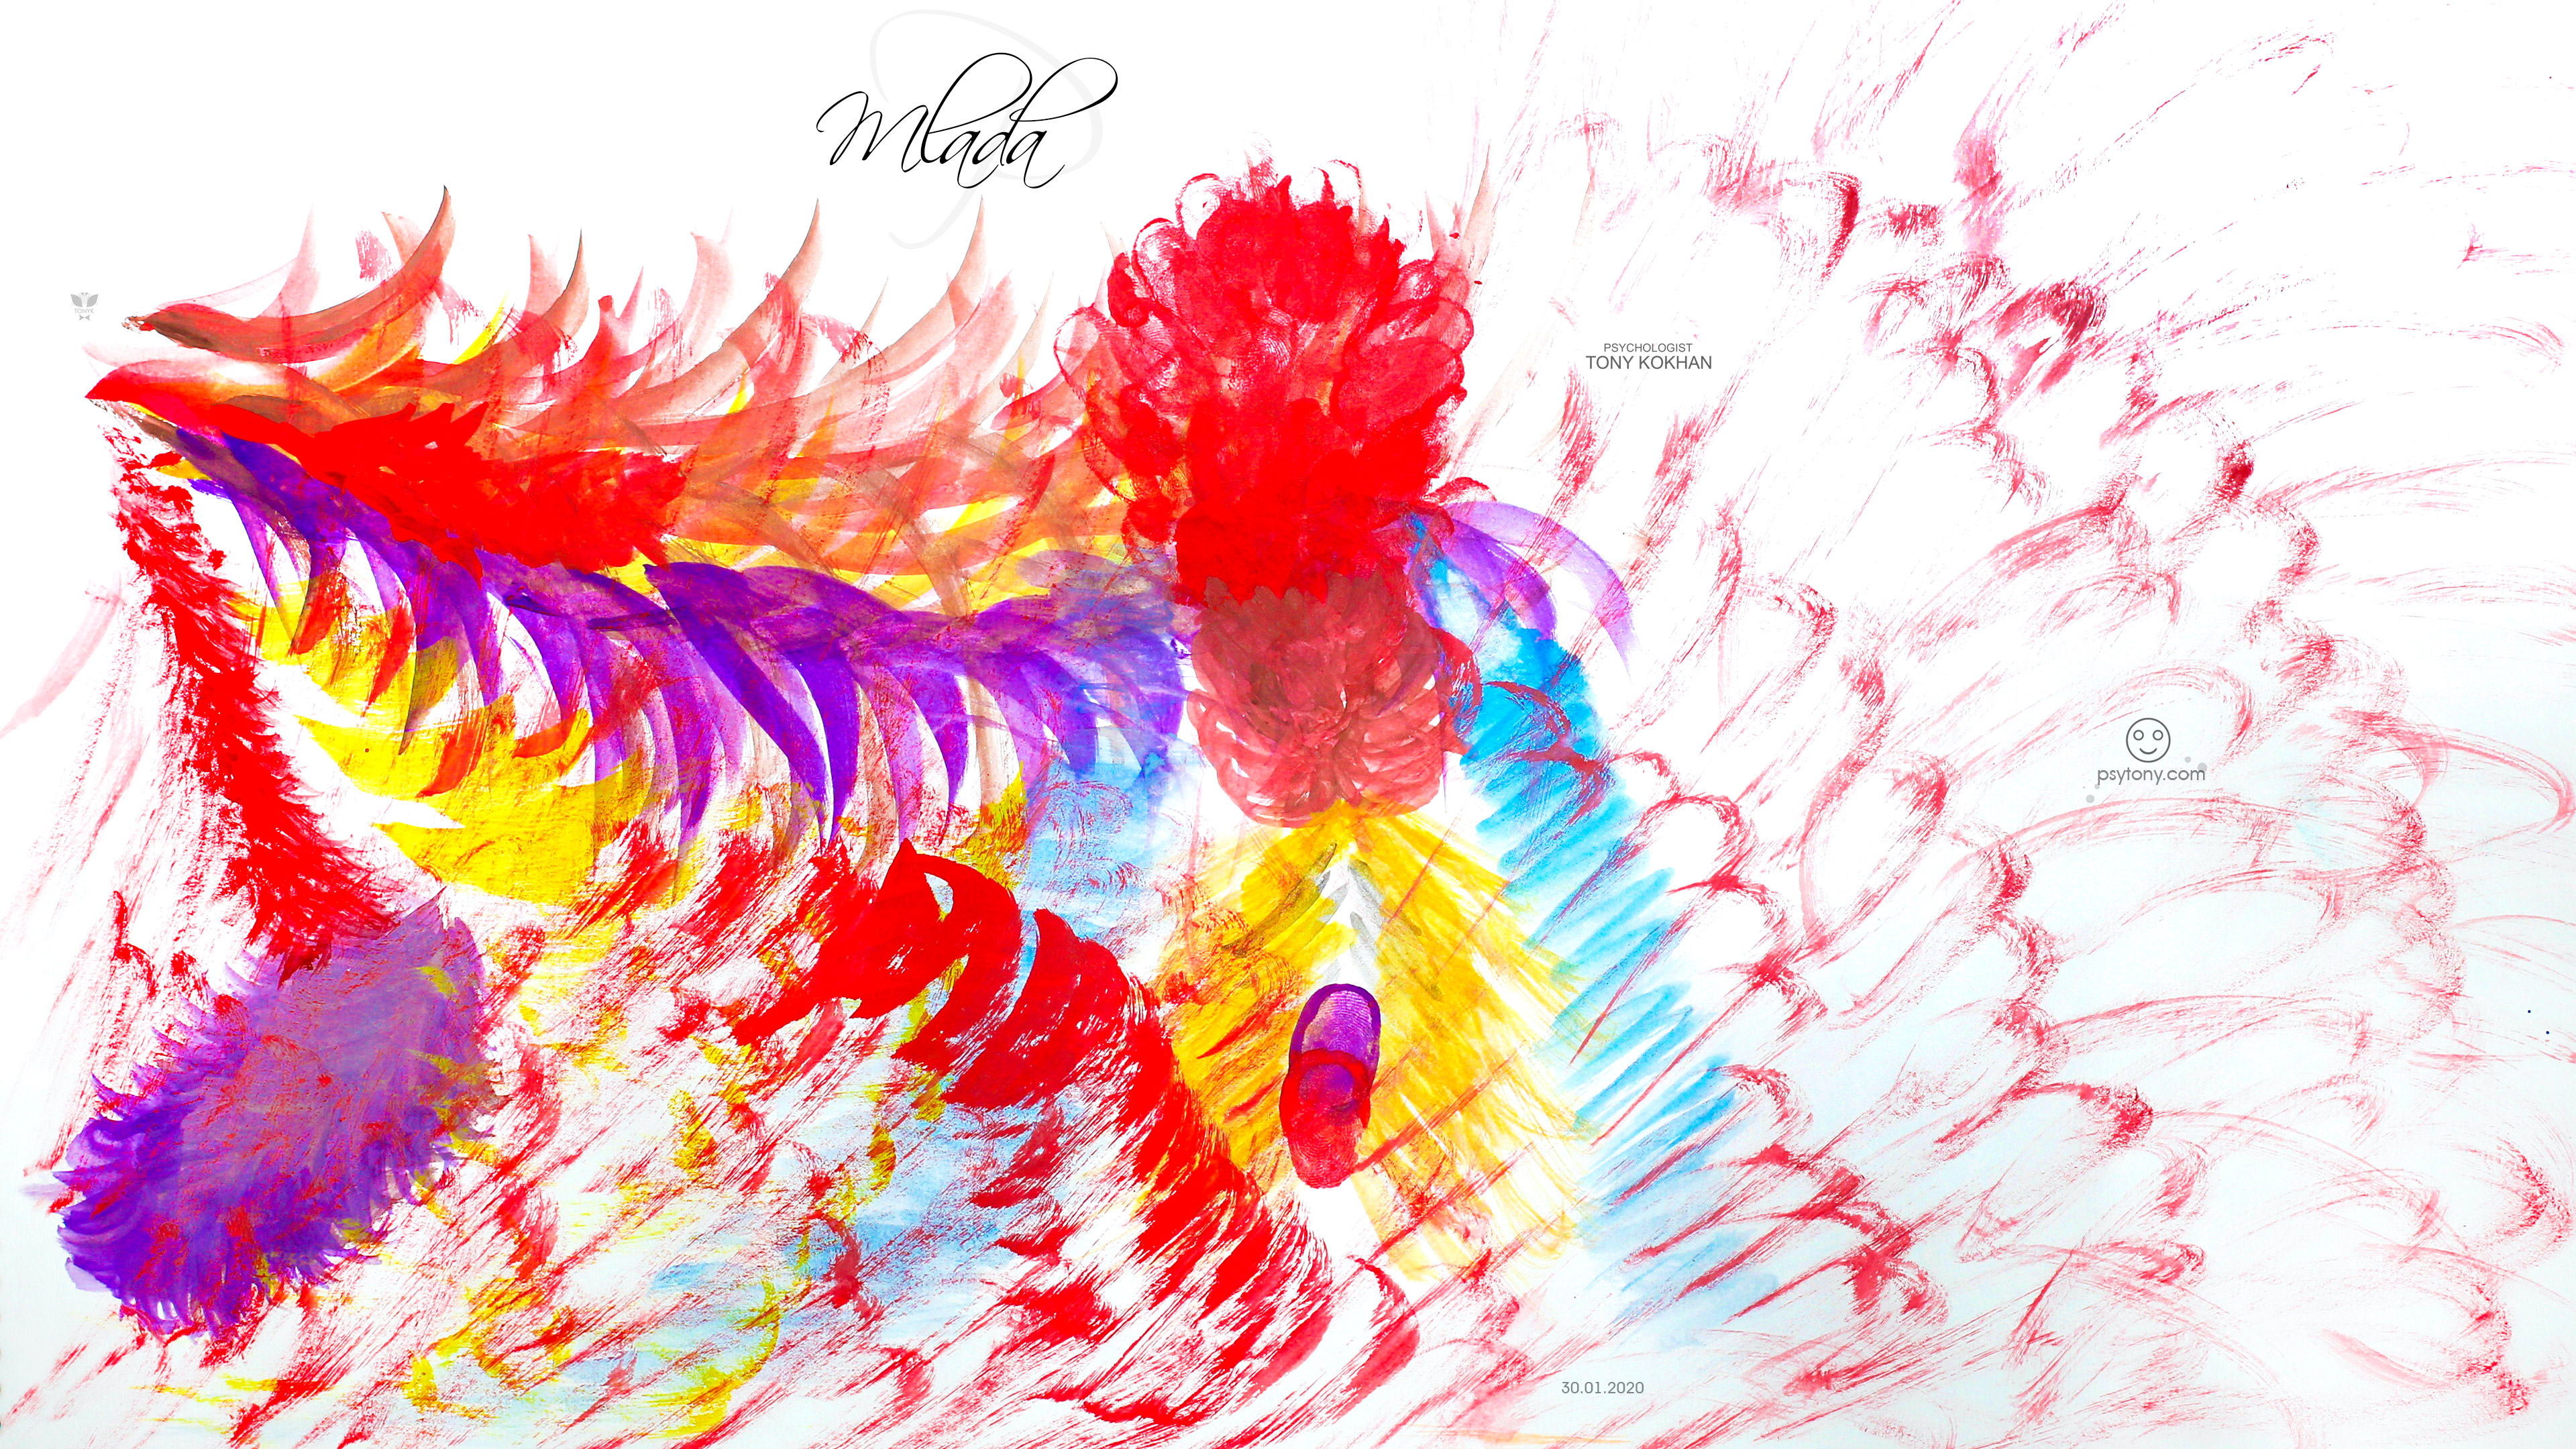 Mlada-Soul-Girl-Centipede-Flowers-Nerves-Rot-Spikes-Fire-Peacock-Tail-Gouache-Picture-Art-2020-Multicolors-4K-Wallpapers-by-Psychologist-Tony-Kokhan-www.psytony.com-image